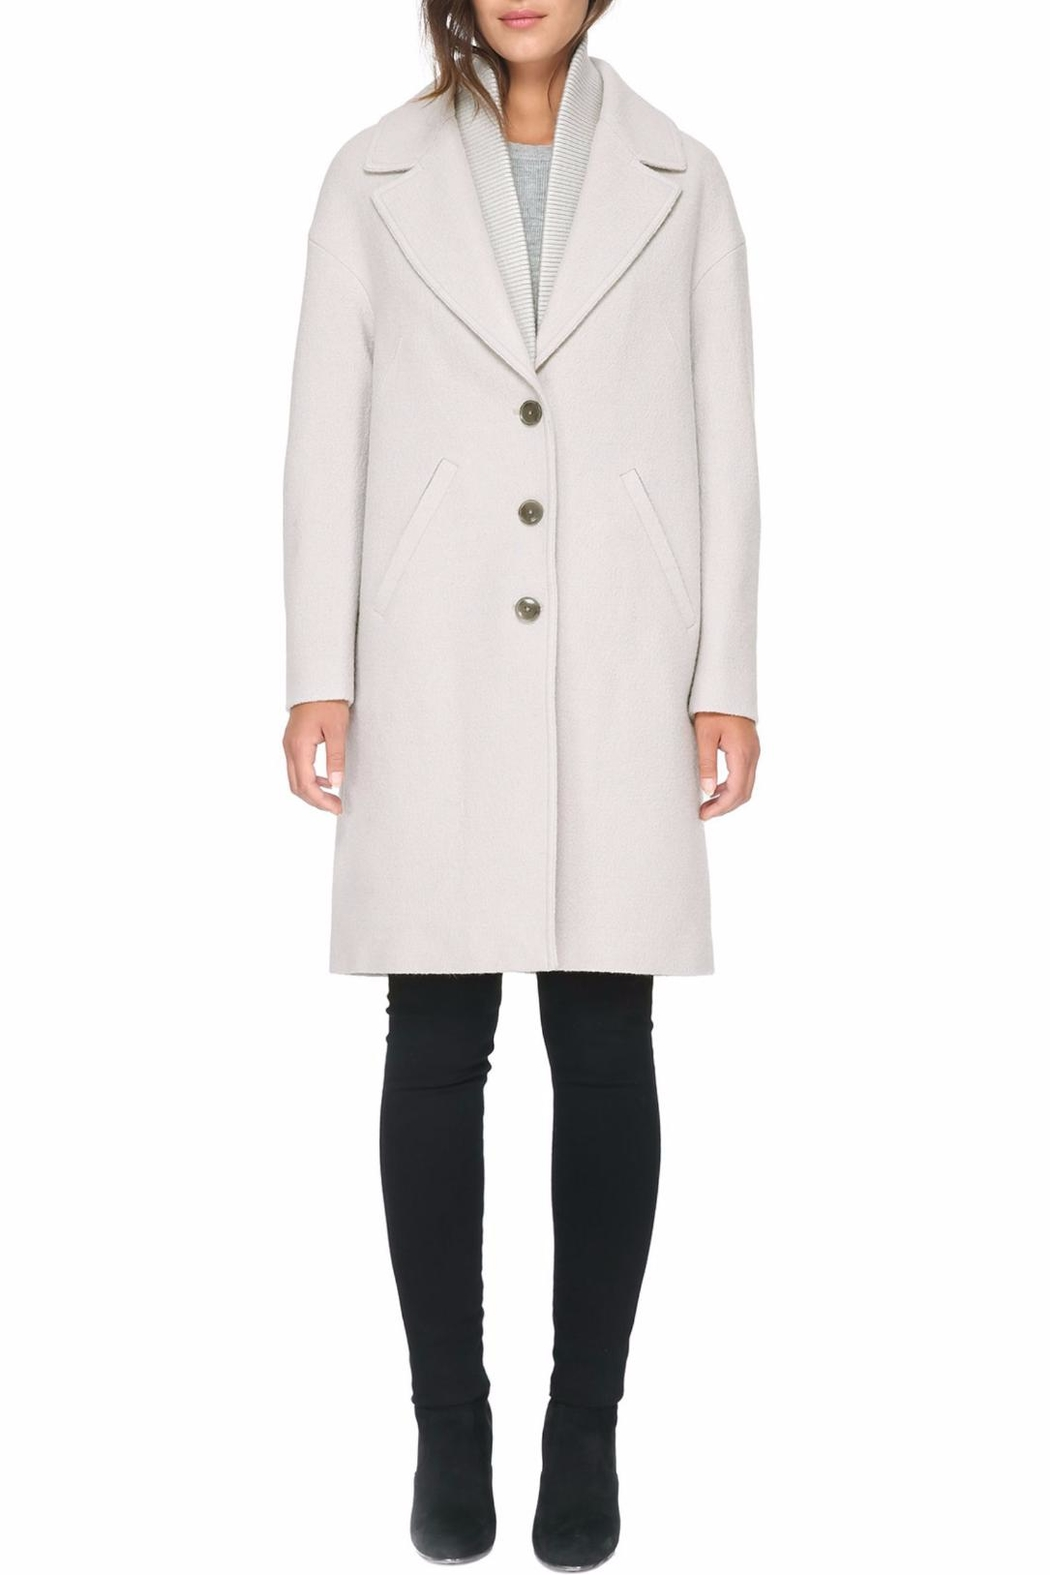 Soia & Kyo Christelle Fx Wool Coat - Side Cropped Image